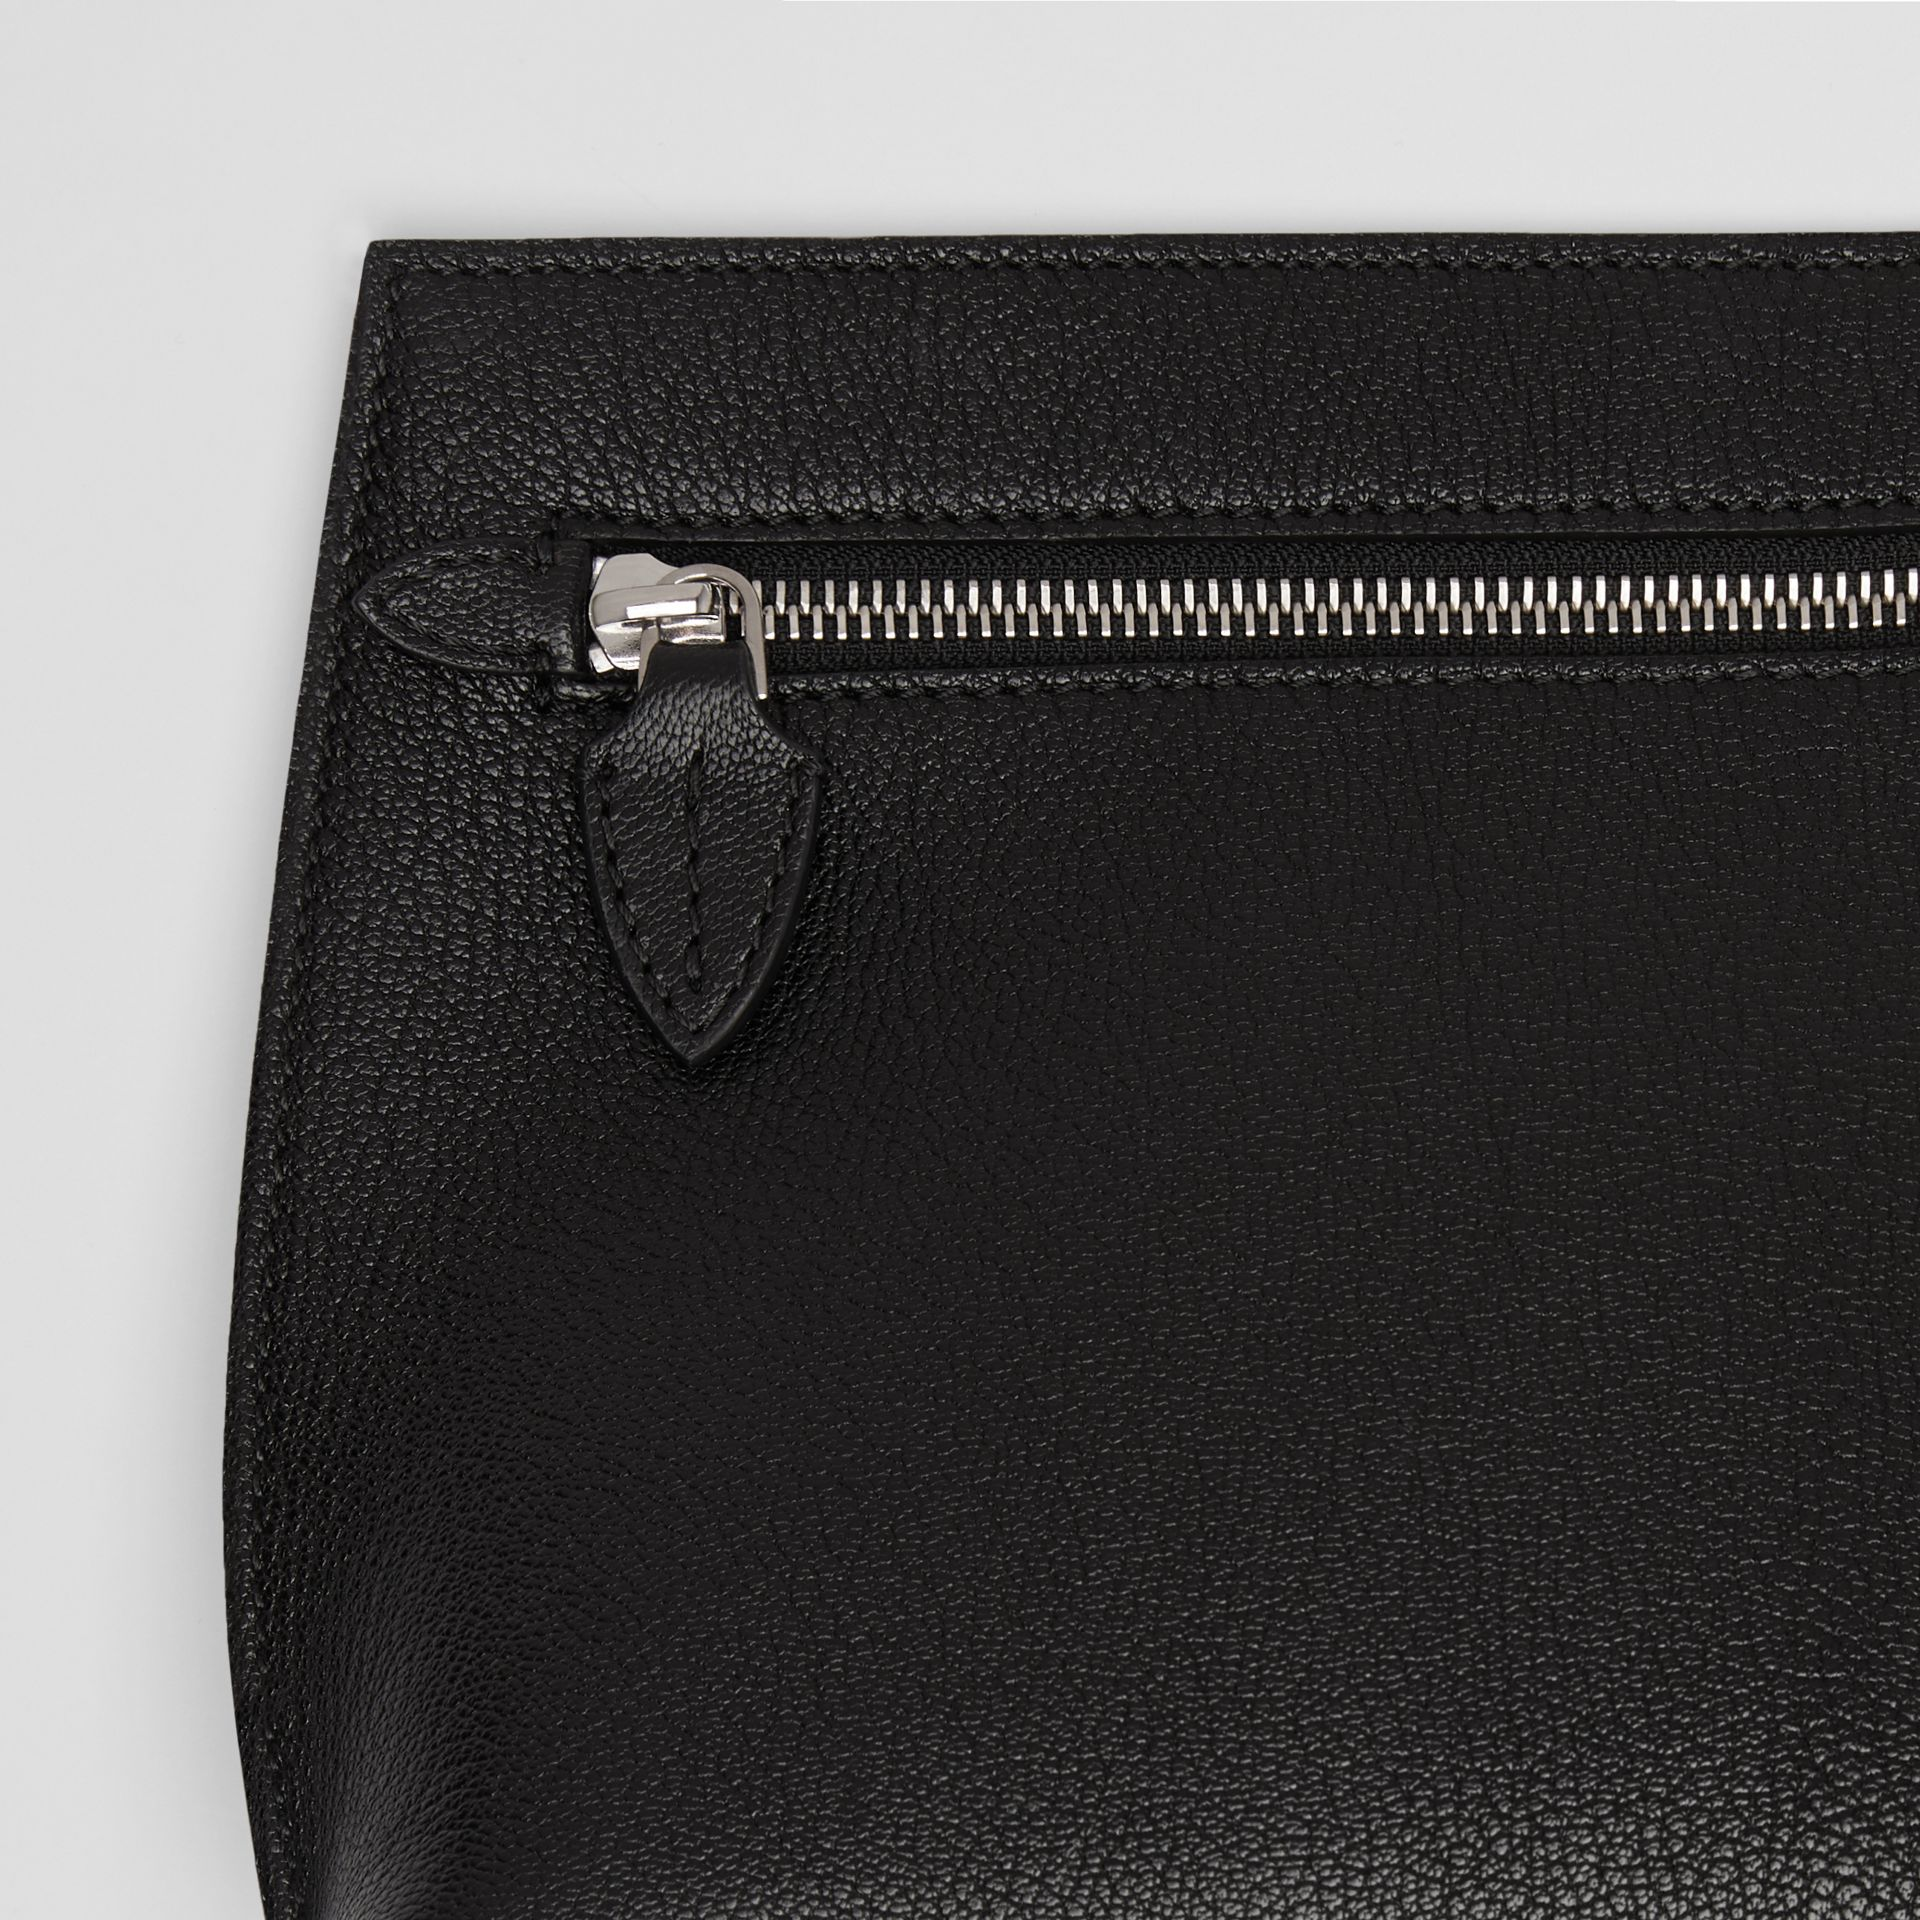 Grainy Leather Wristlet Clutch in Black - Women | Burberry Canada - gallery image 1